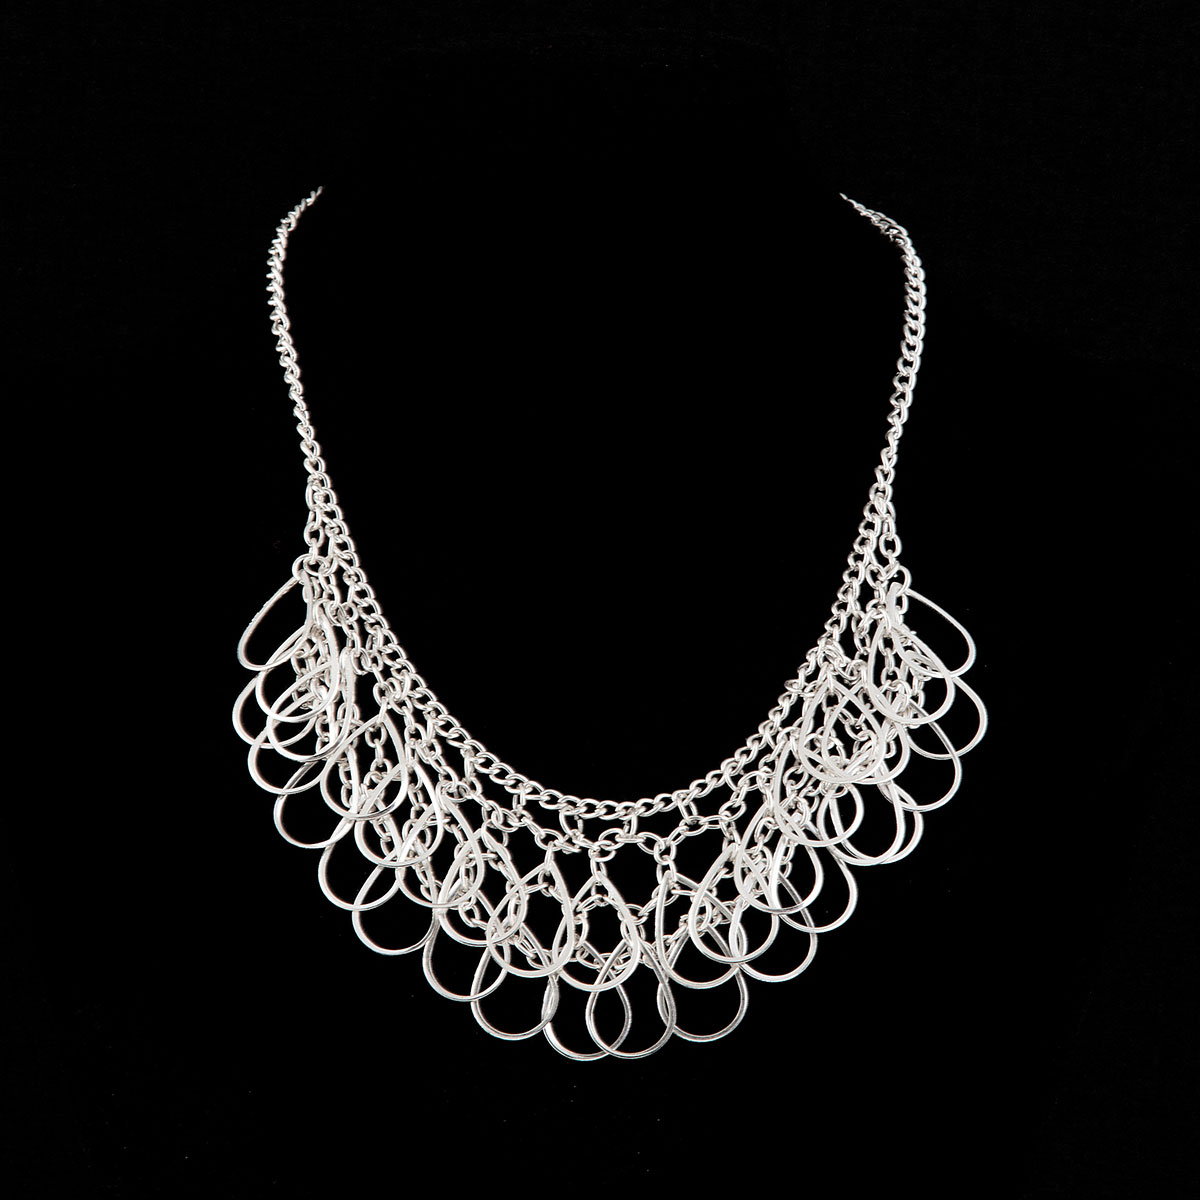 Silver Drop Multi Teardrop on Chain Necklace